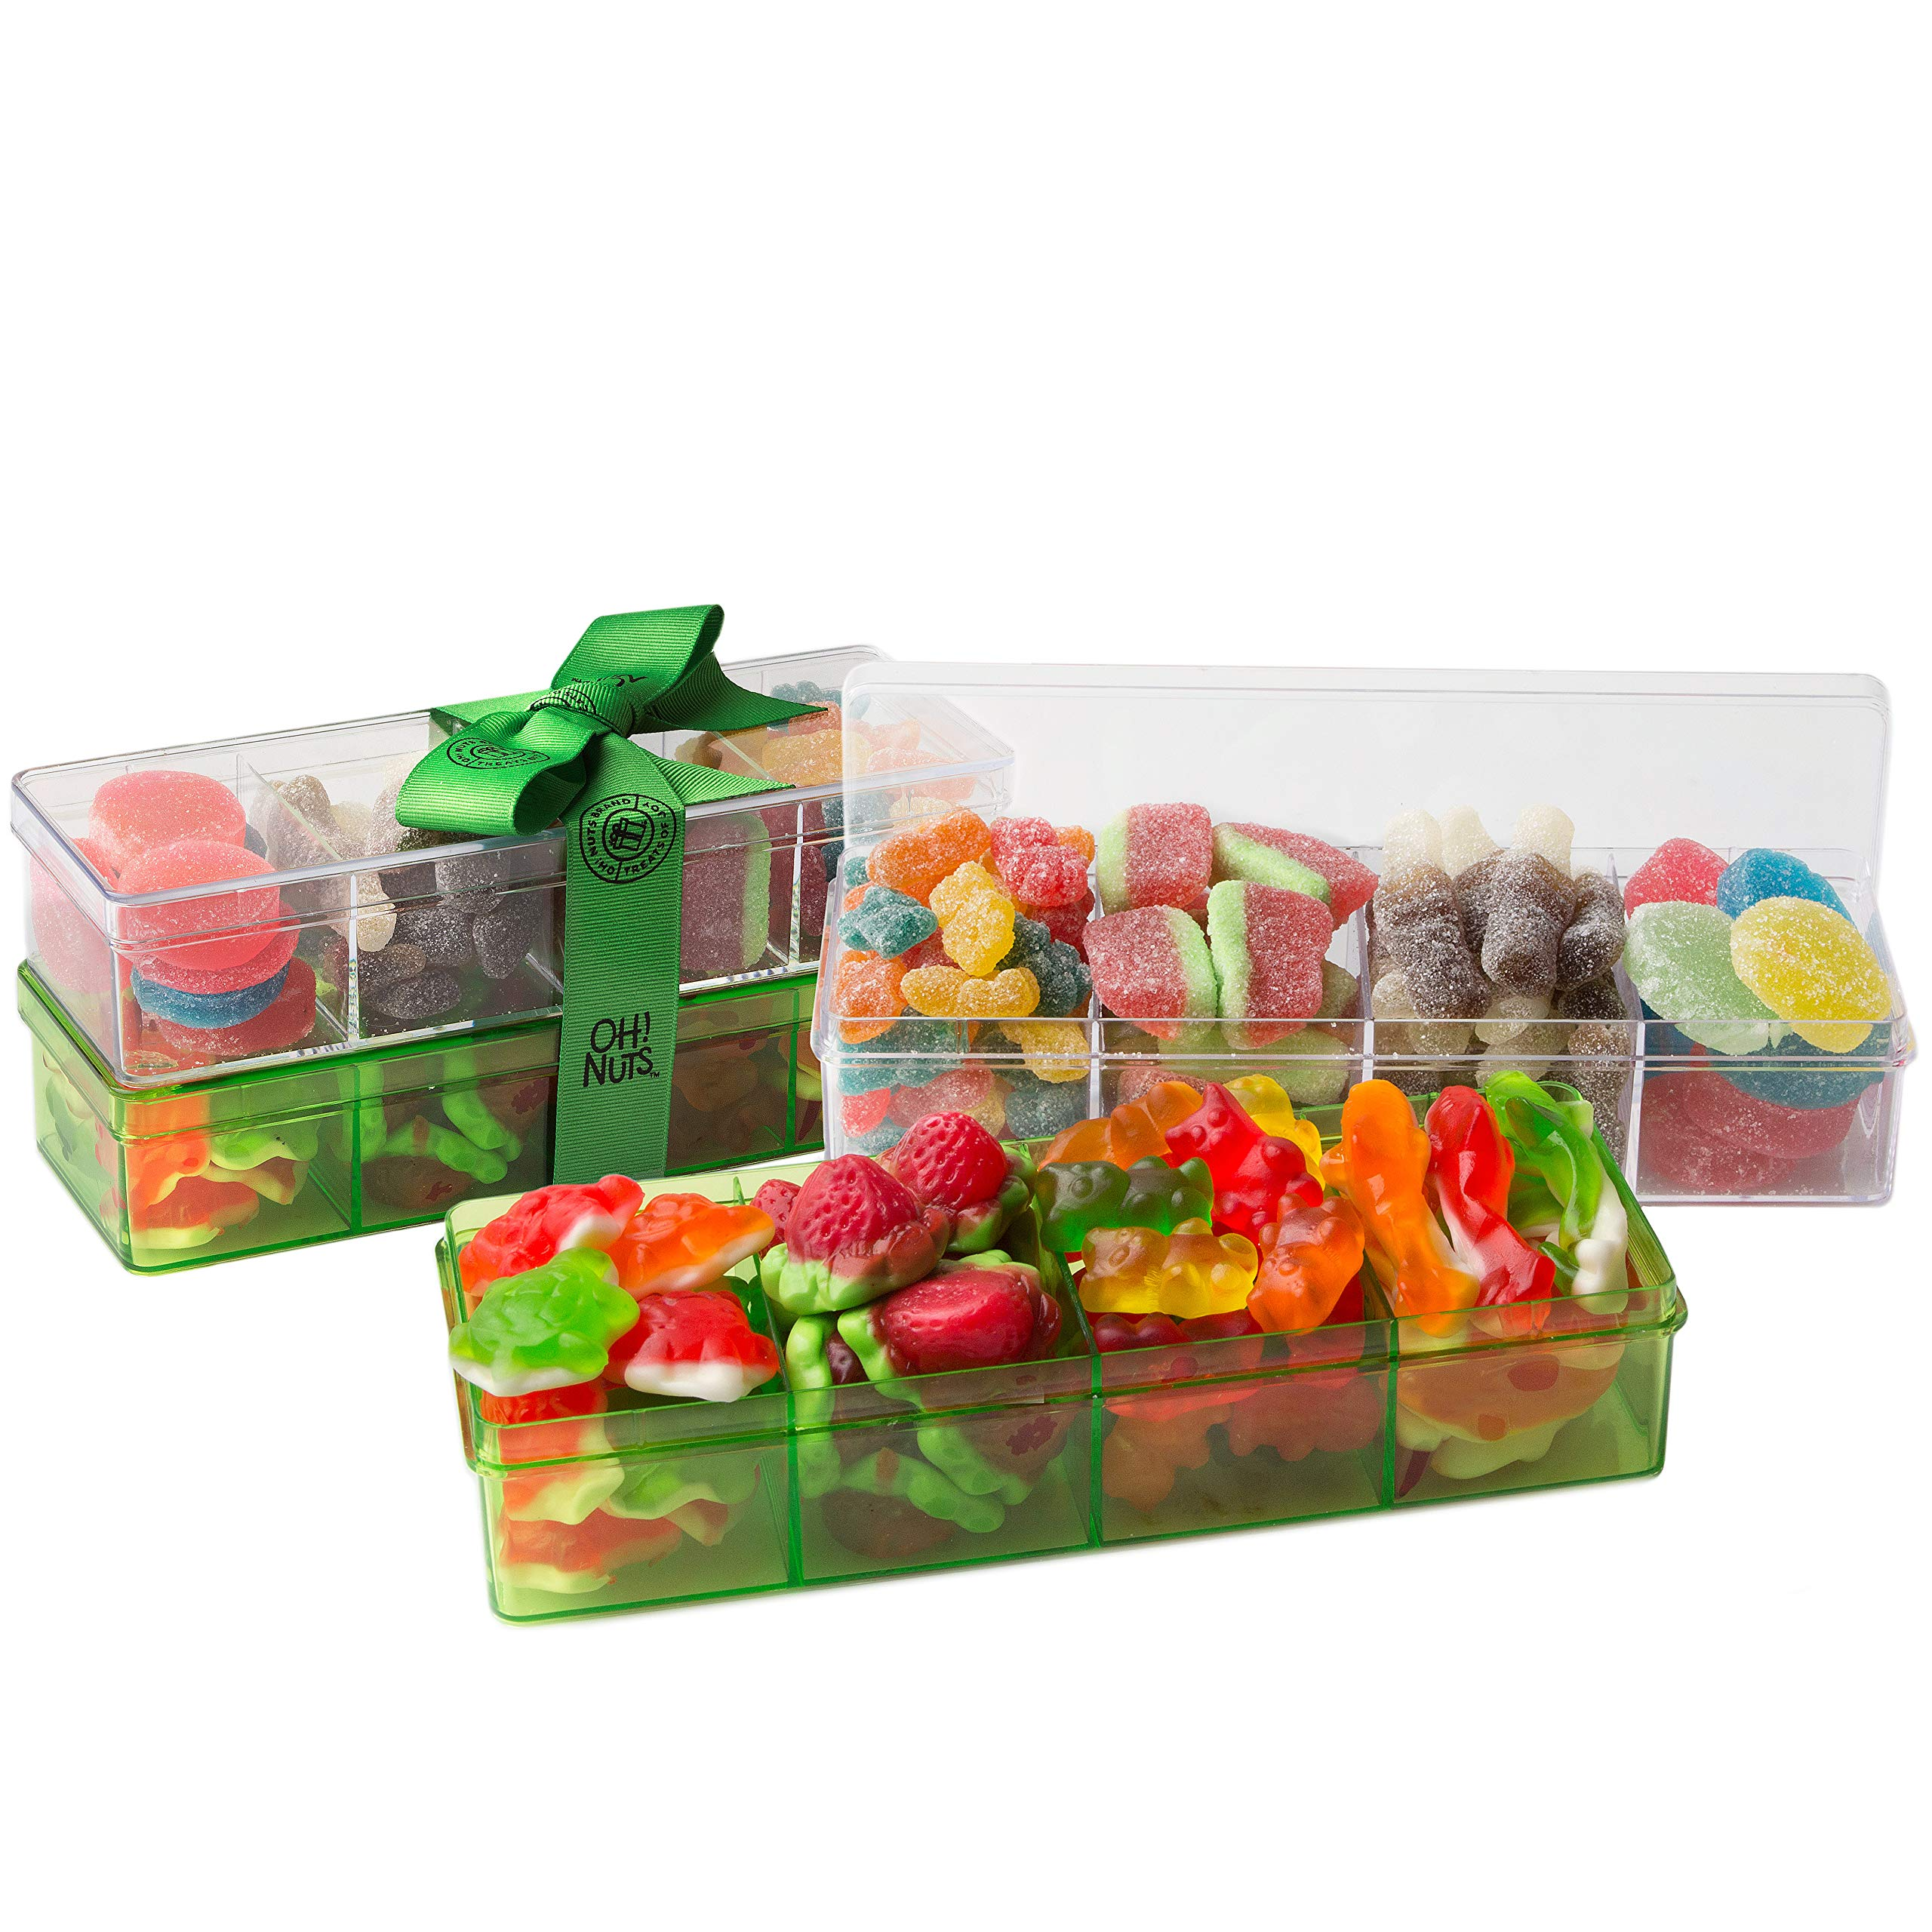 Kosher Camp Packages and Gifts - Kosher Snack and Kosher Candy - Oh! Nuts (Ultra Catch Discs Kids Gift)